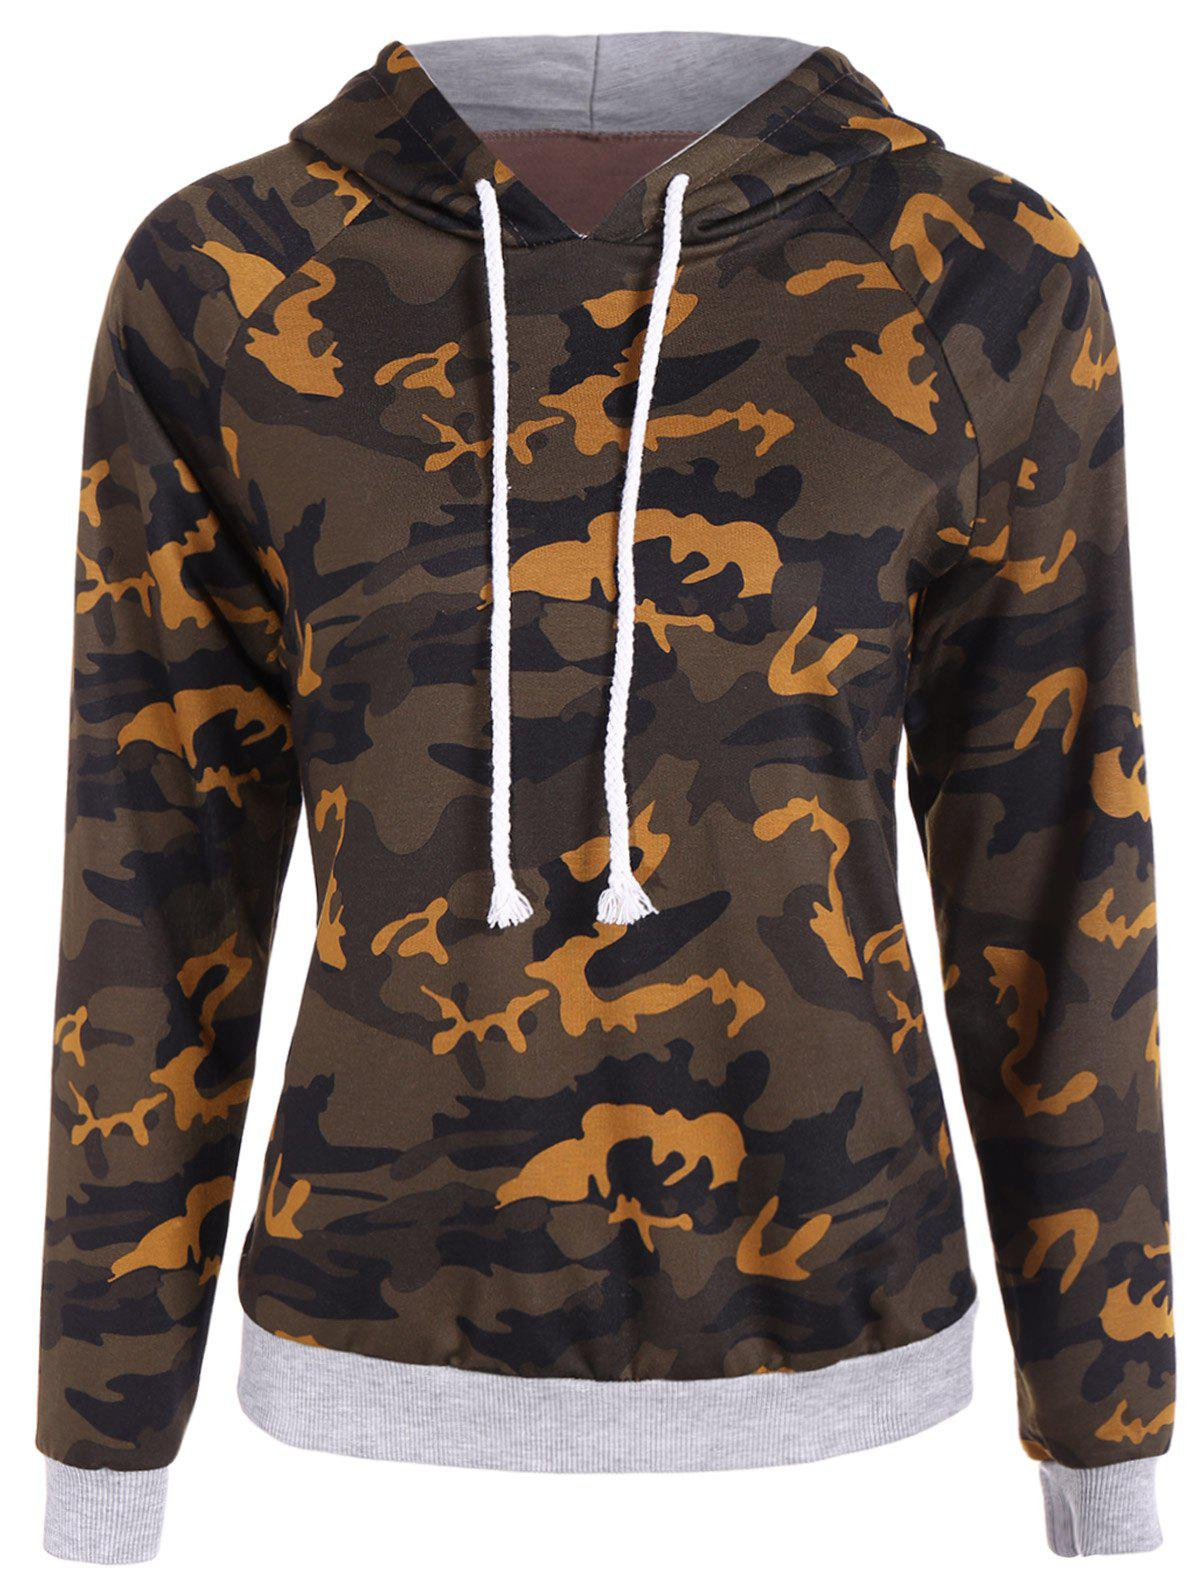 Drawstring Camo Print Paneled HoodieWomen<br><br><br>Size: L<br>Color: CAMOUFLAGE COLOR